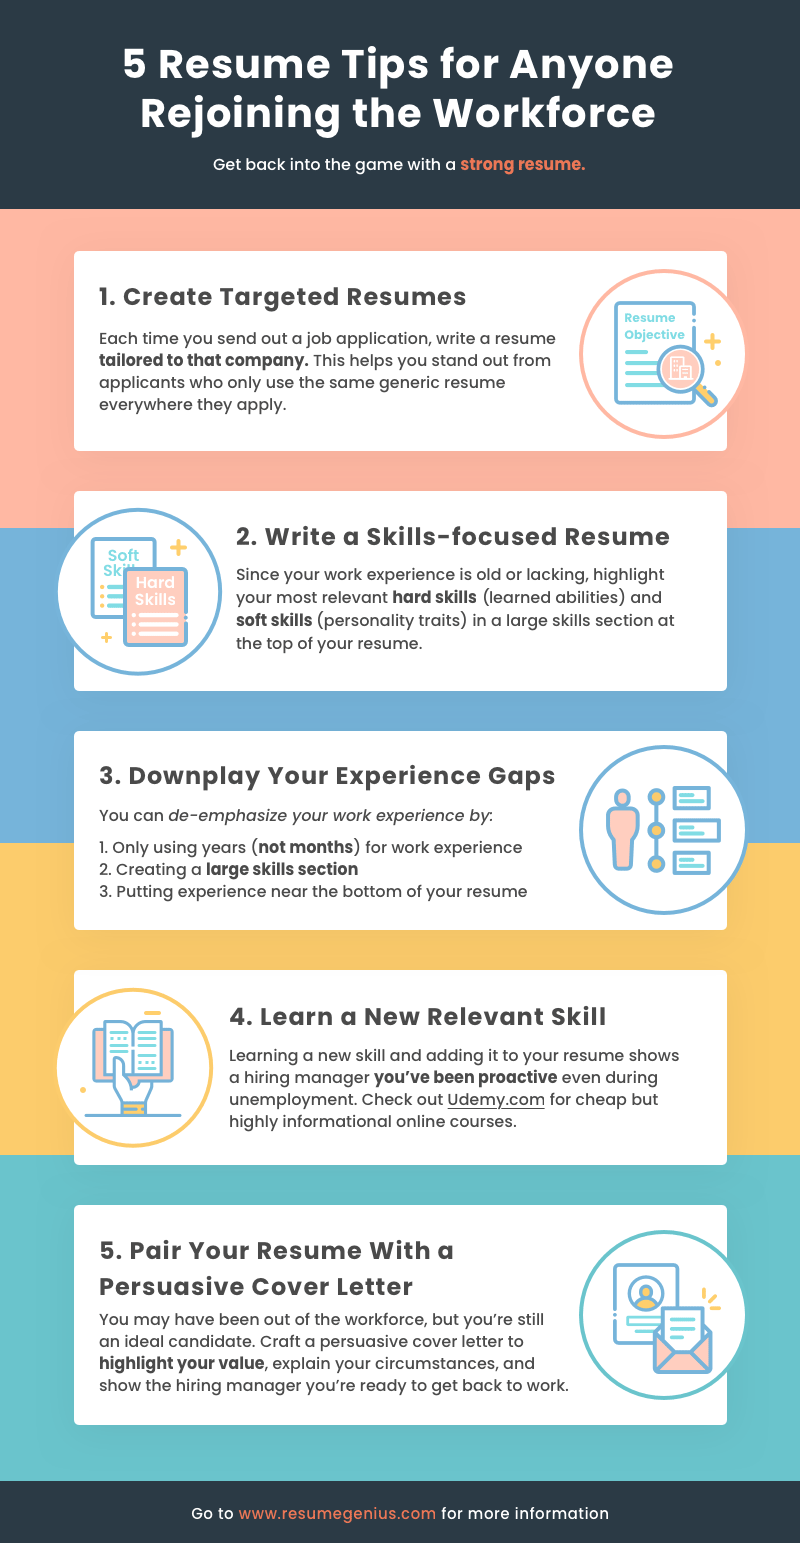 resume tips for anyone rejoining the workforce after an employment gap, infographic form